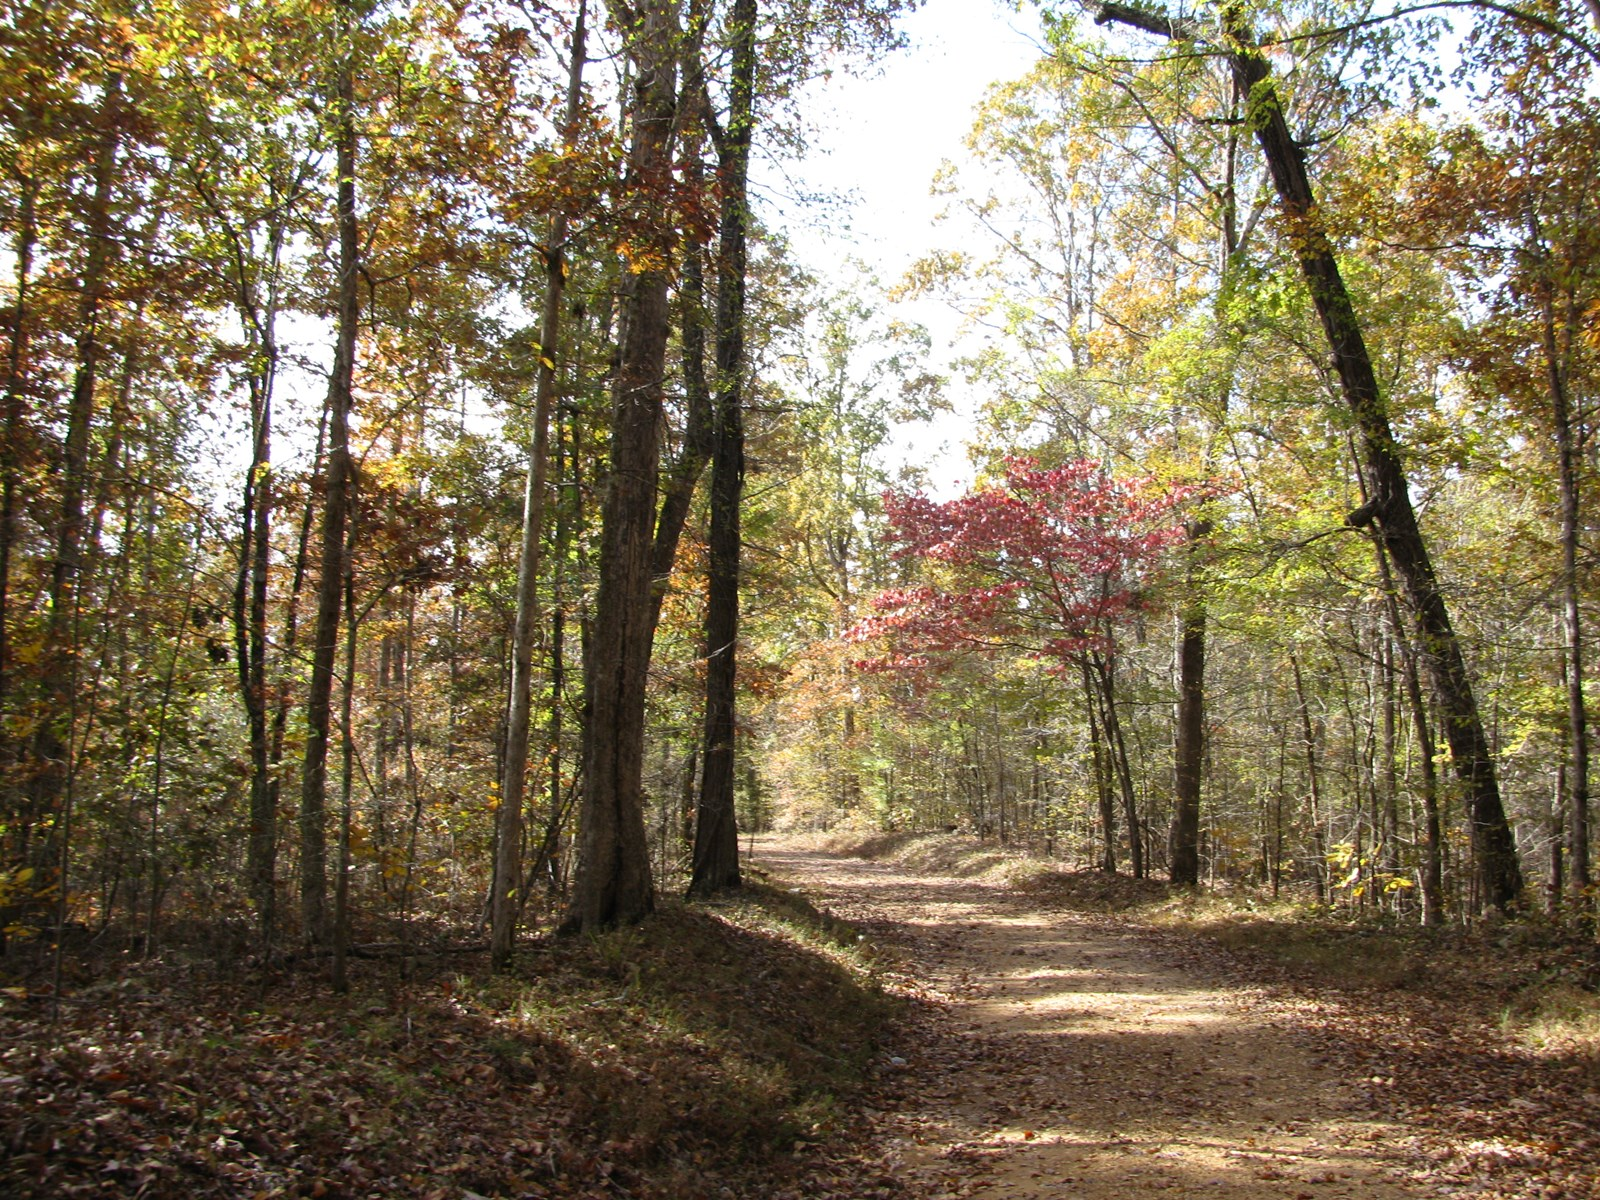 LAND FOR SALE IN TENNESSEE, BUILD OR RECREATIONAL